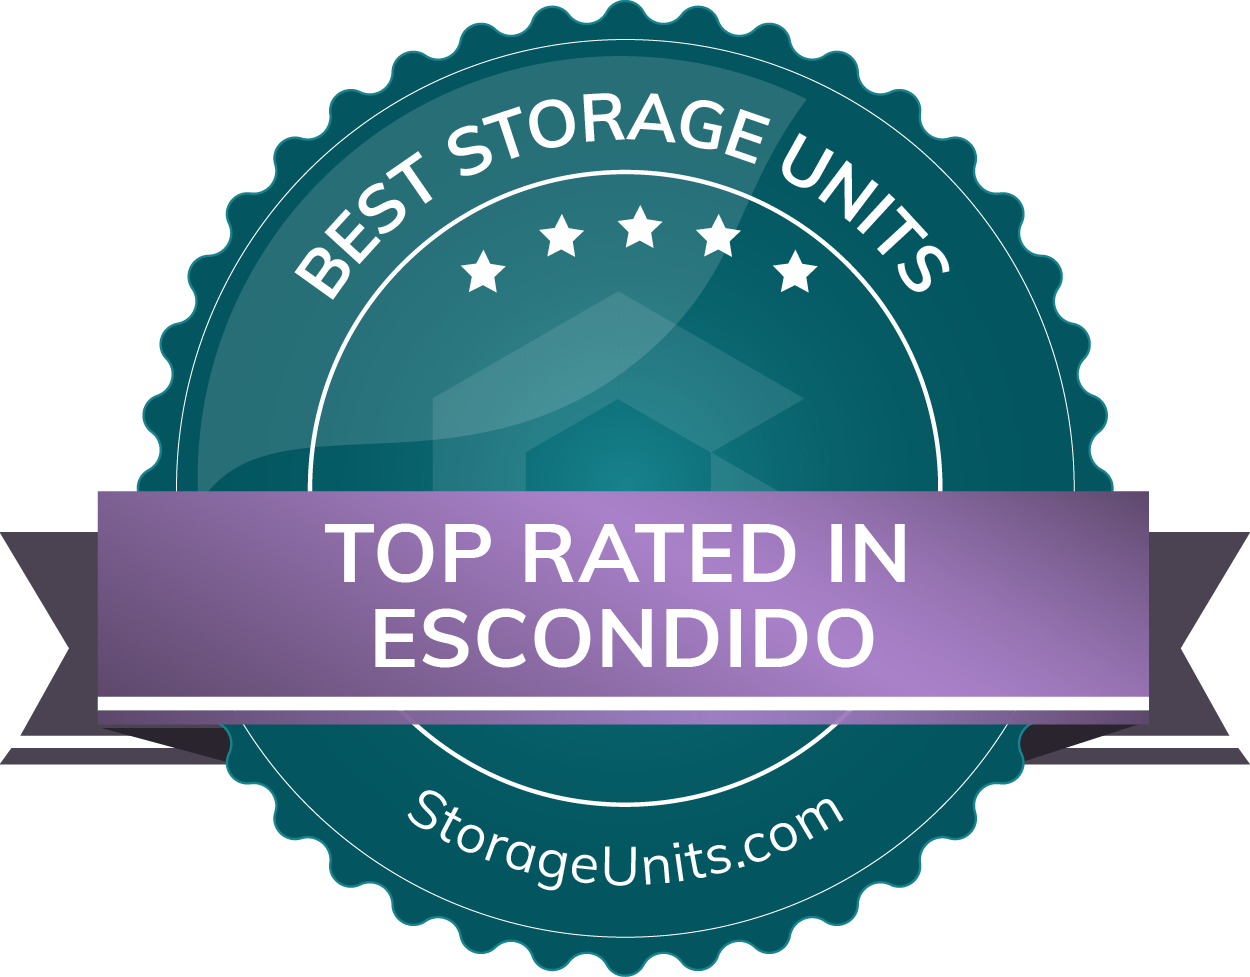 Best Self Storage Units in Escondido, CA